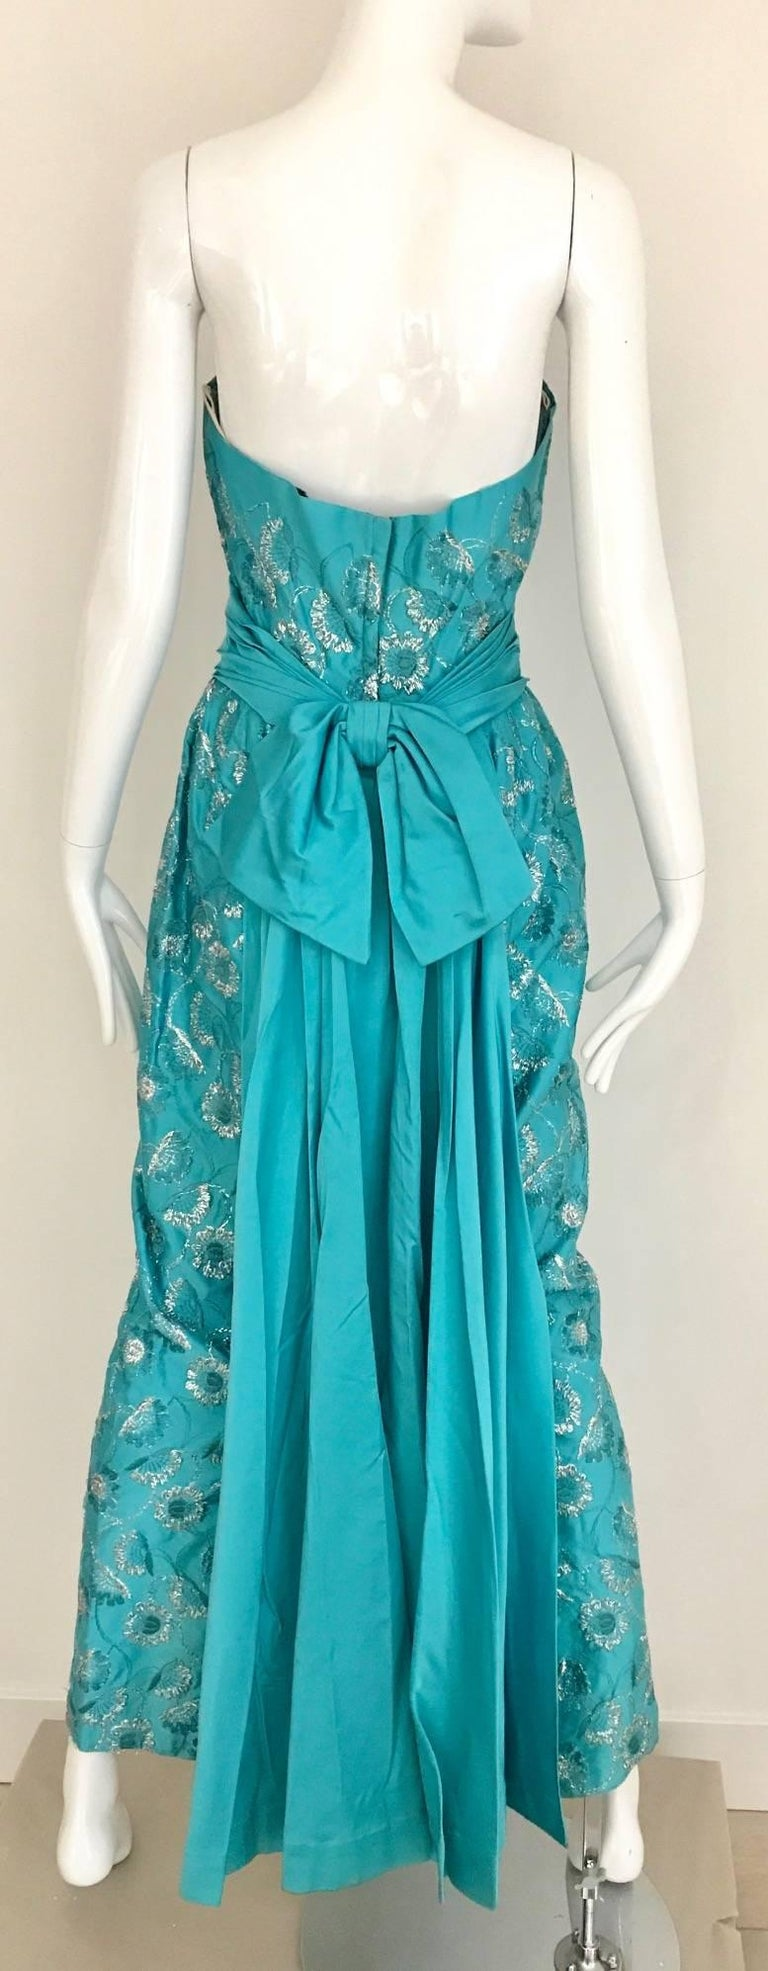 1960s Turquoise And Silver Embroidered Strapless Gown For